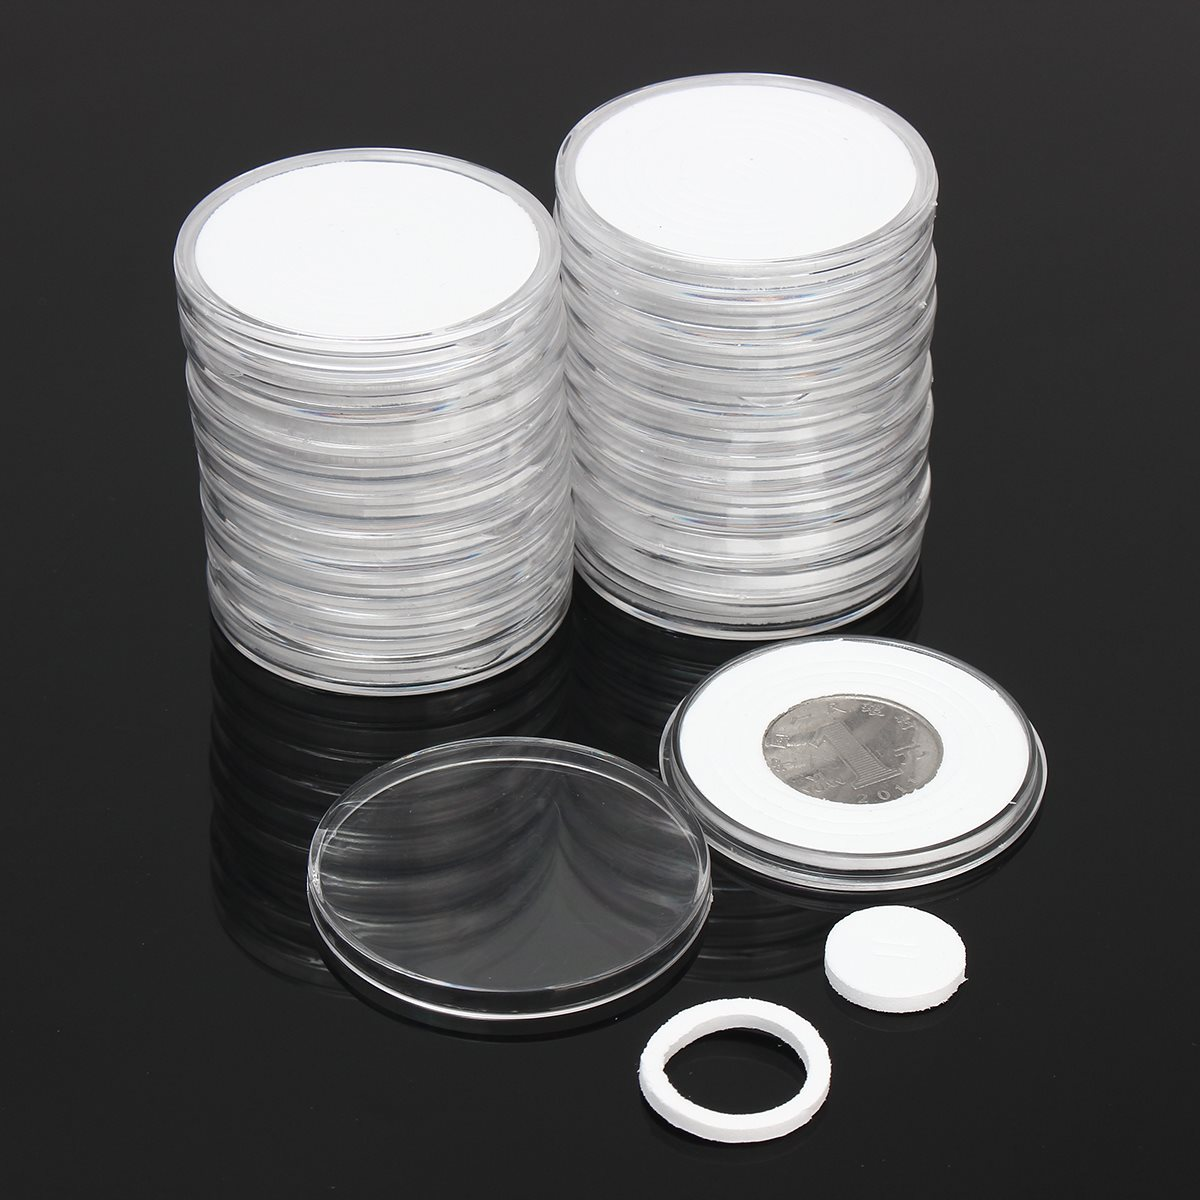 Capsules-Holder Container-Box Collection Coin-Storage Display Clear Plastic Round Cases